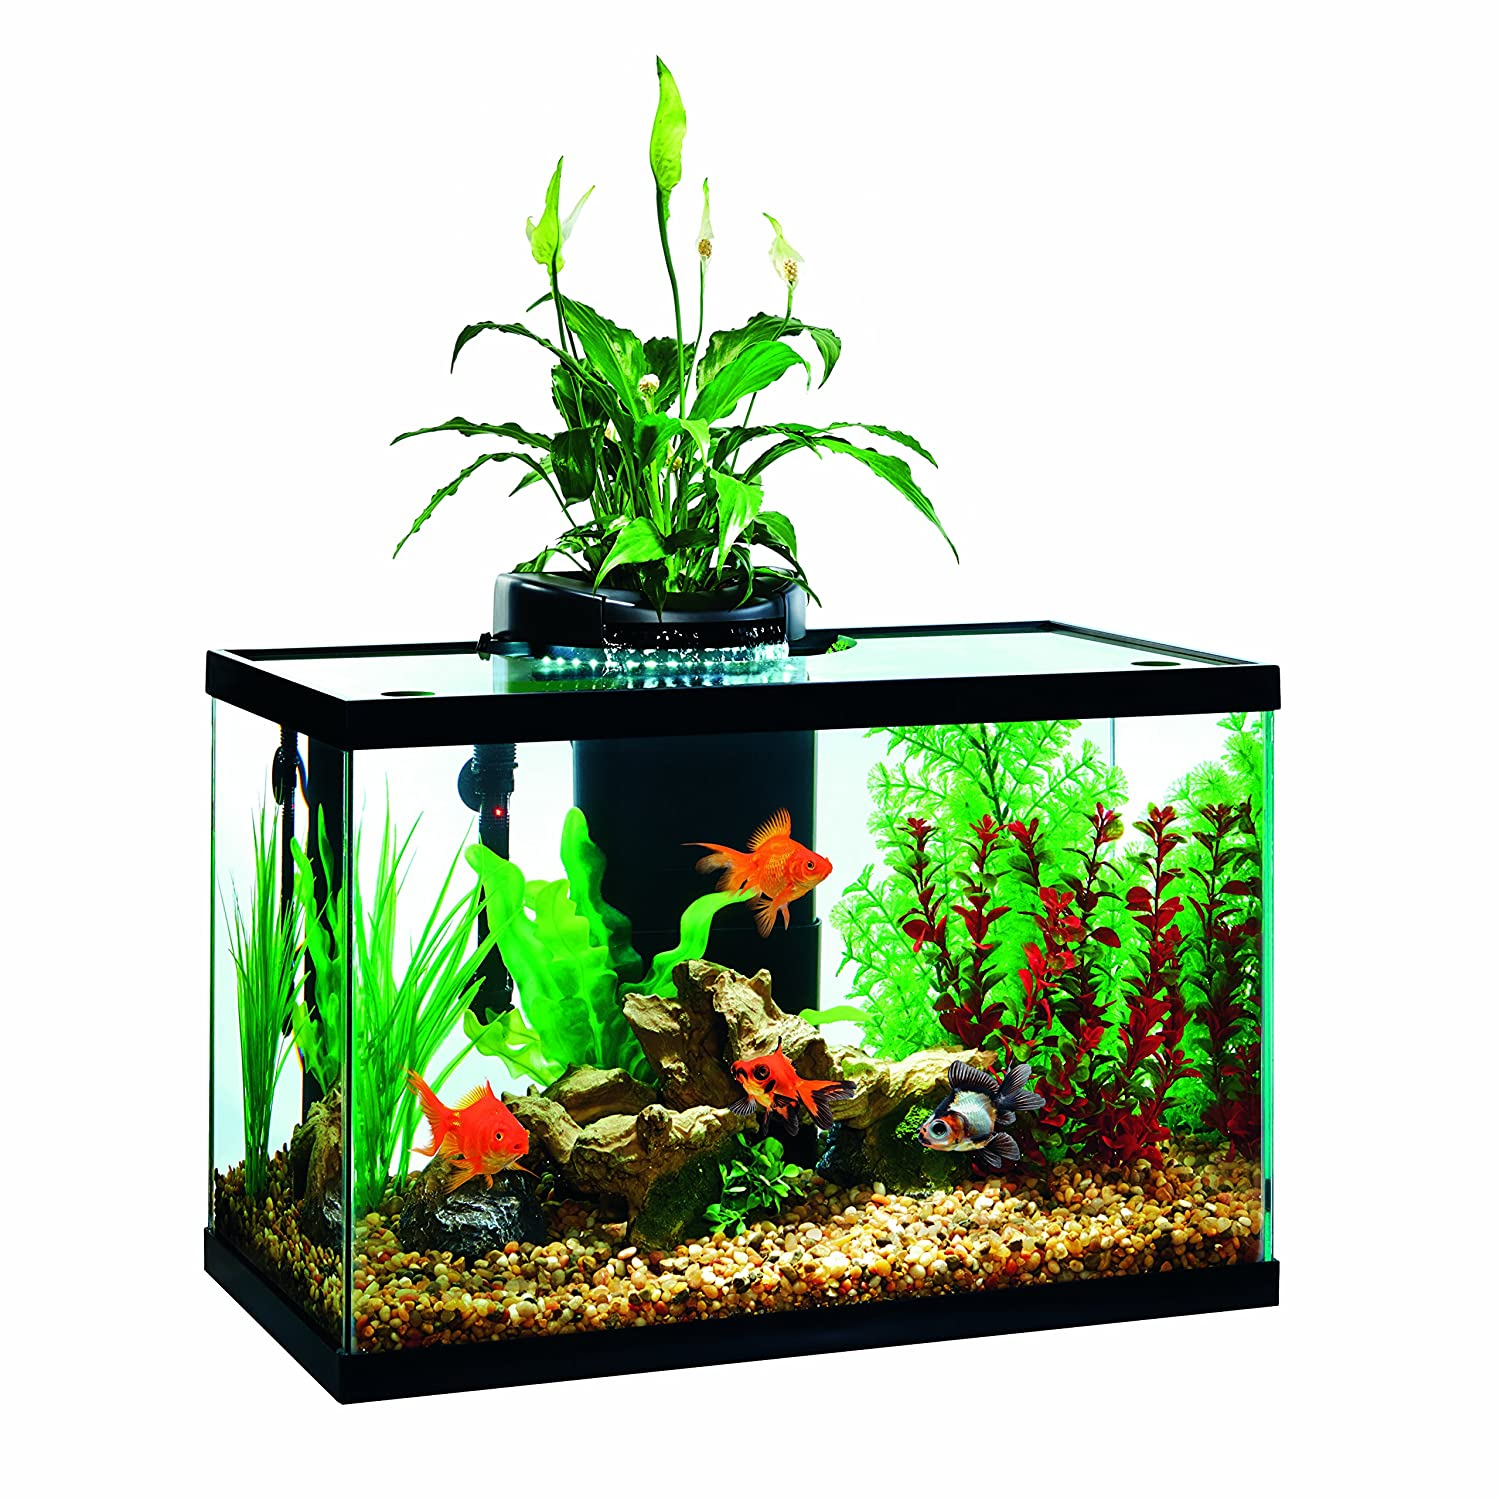 Amazon Elive Aqua duo 20 gallon LED Kit Aquarium Starter Kits